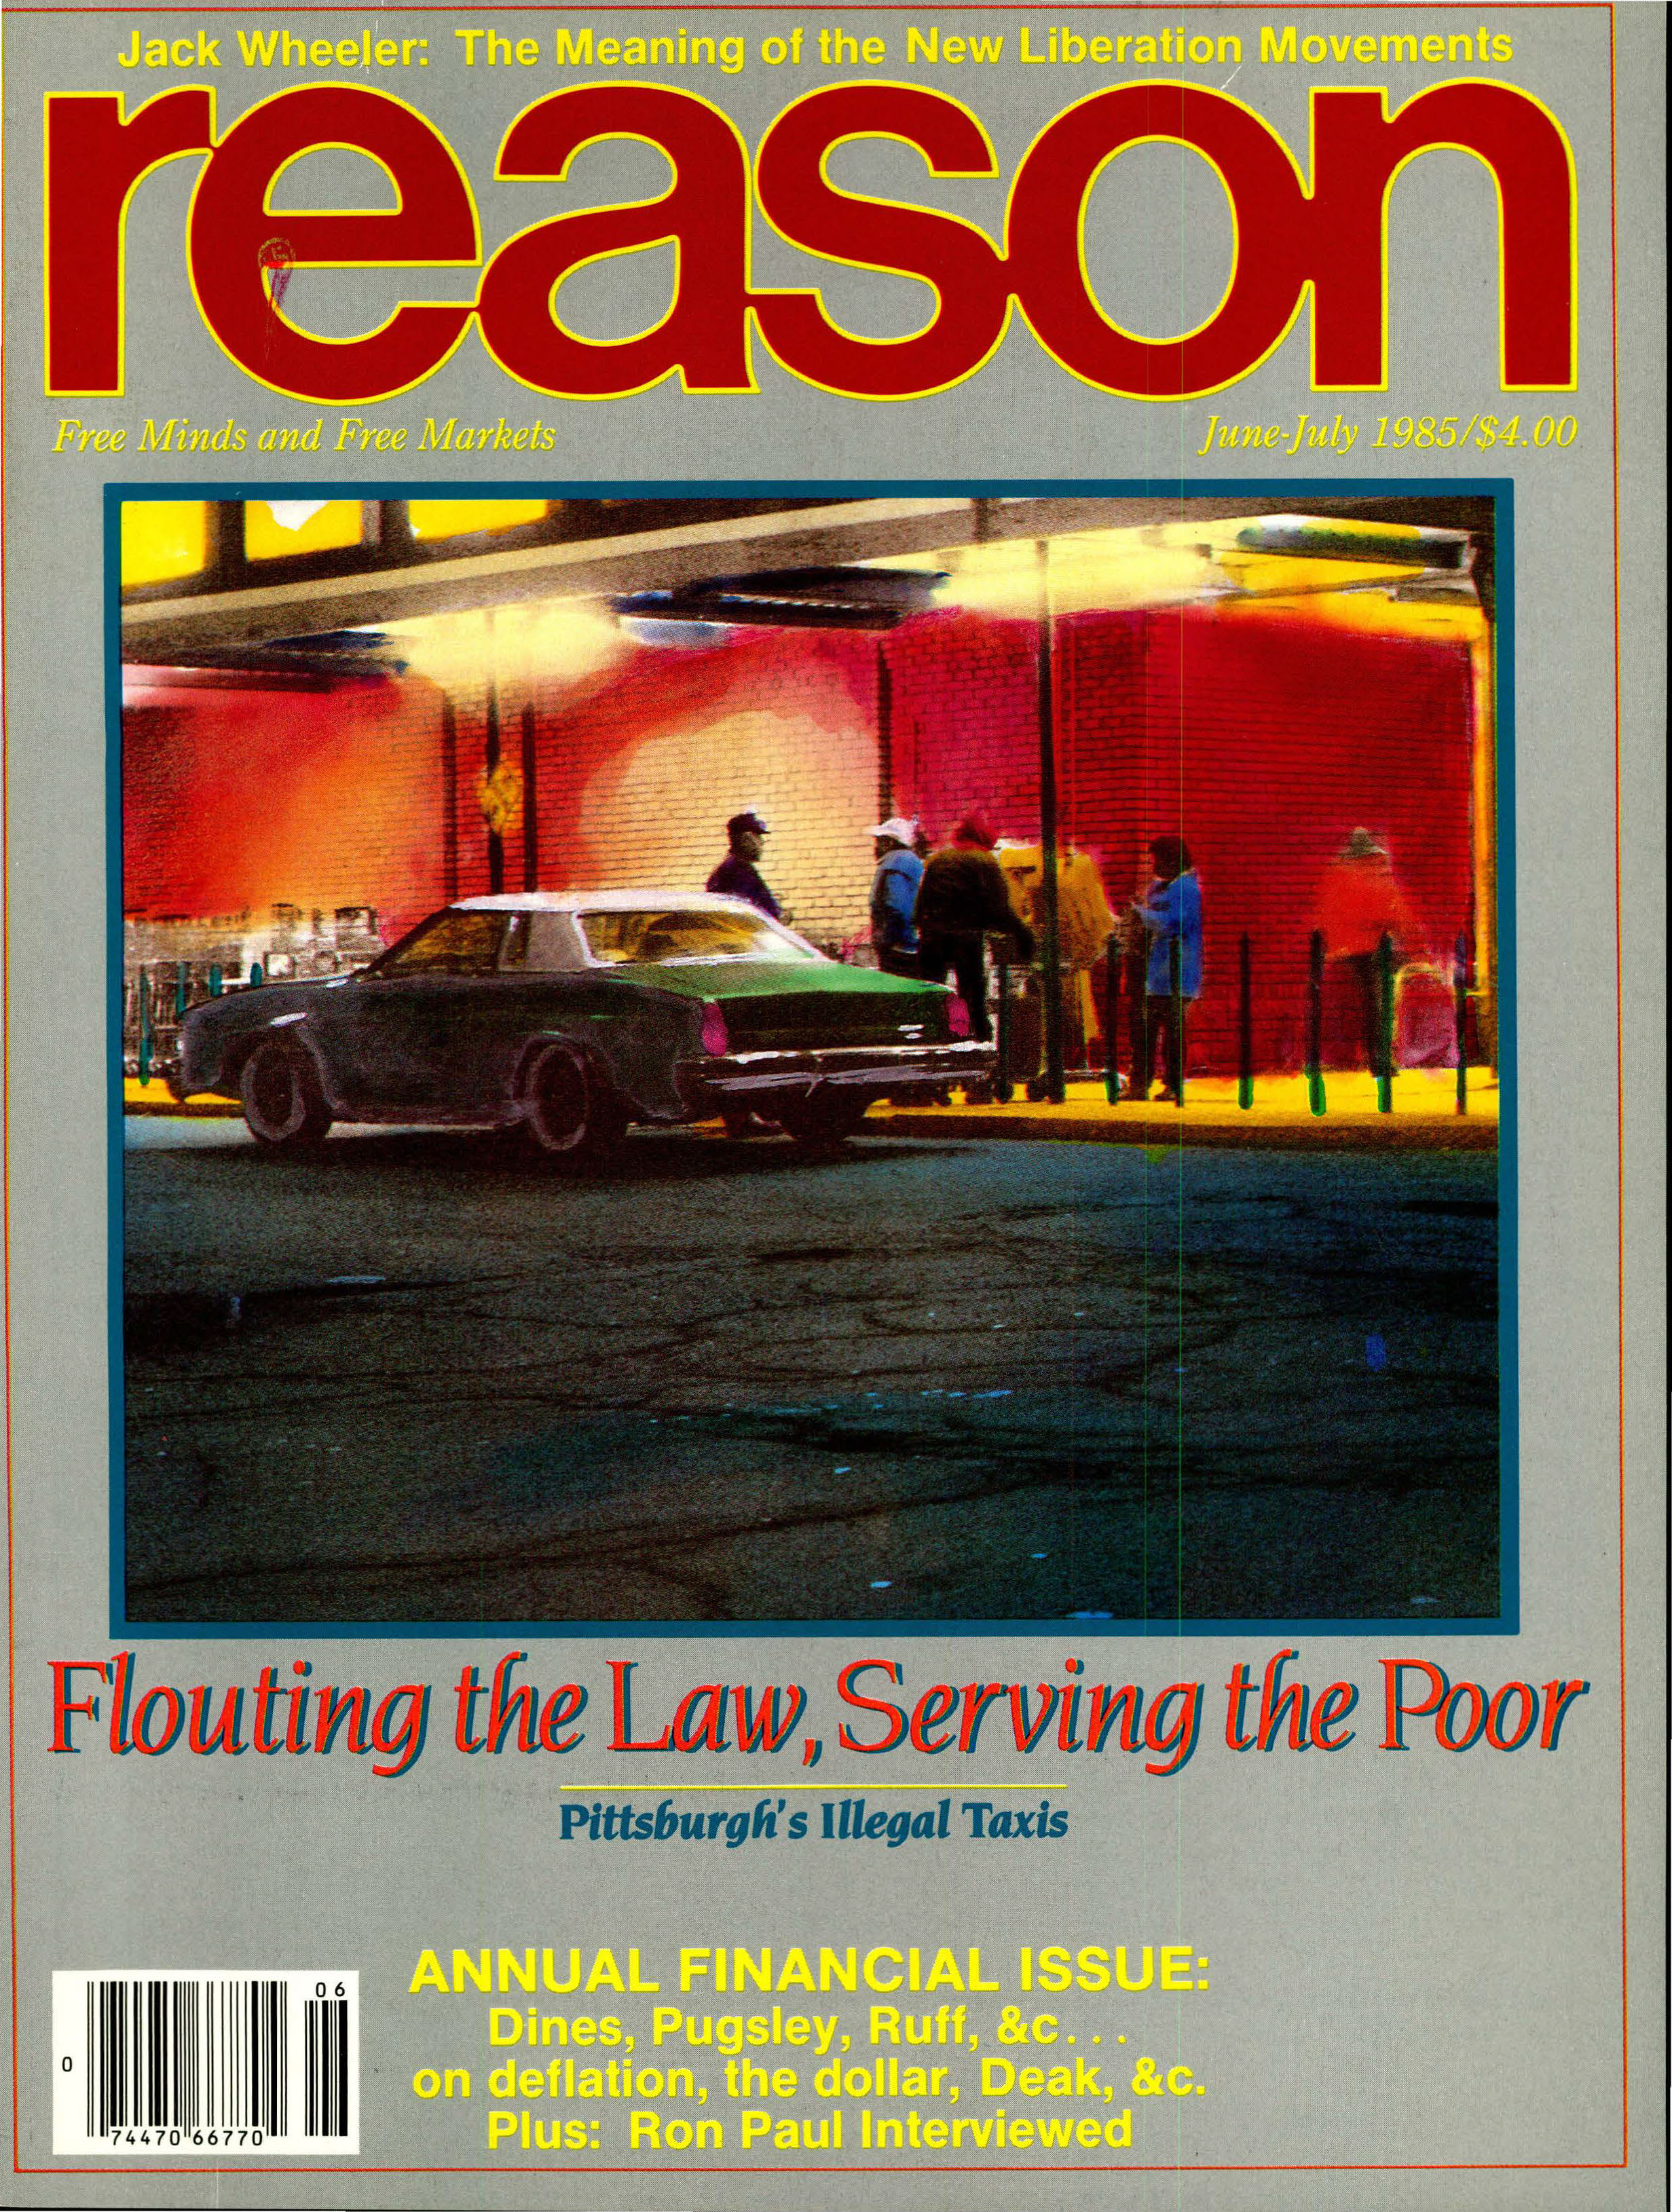 Reason Magazine, June/July 1985 cover image